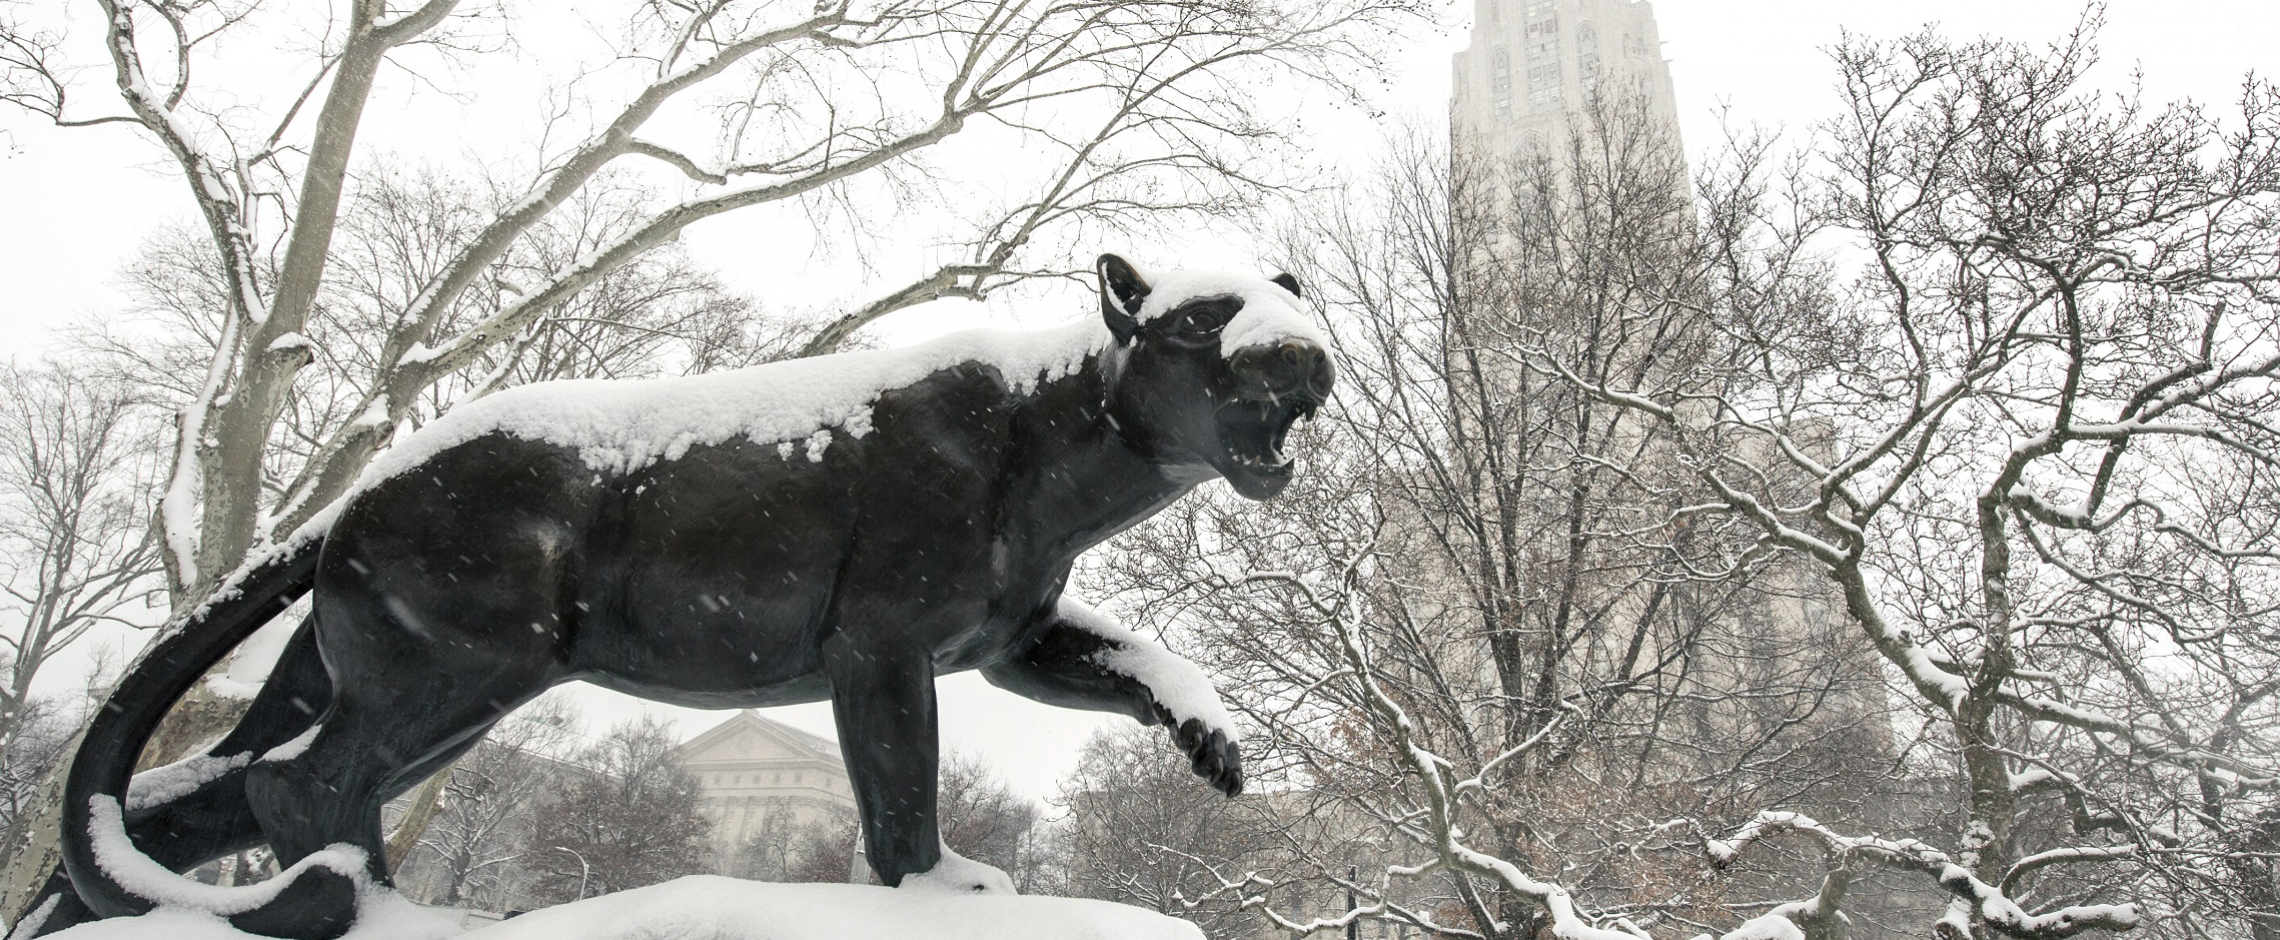 Panther Statue in Snow